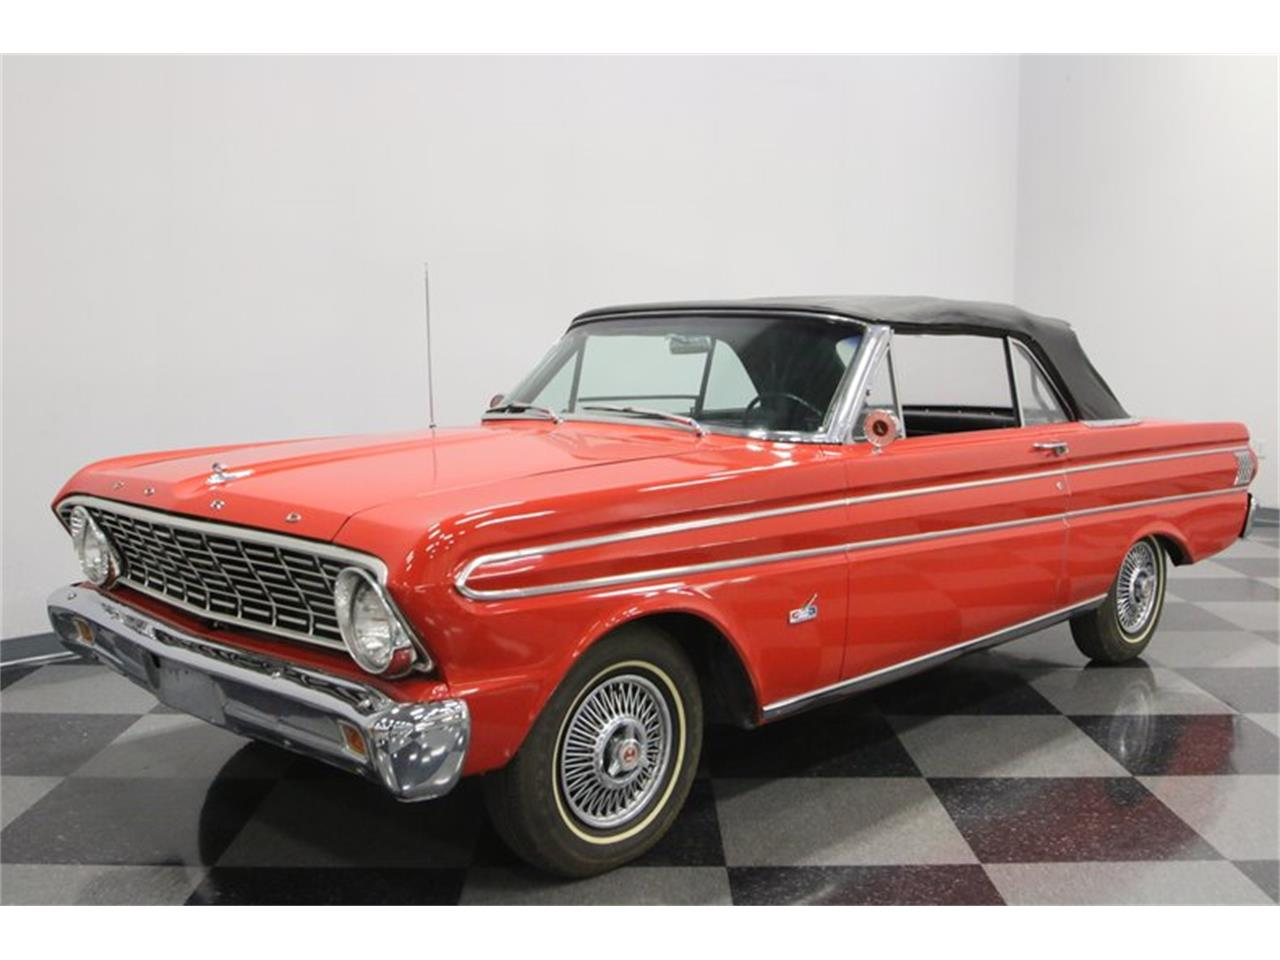 1964 Ford Falcon Futura for sale in Lavergne, TN – photo 20